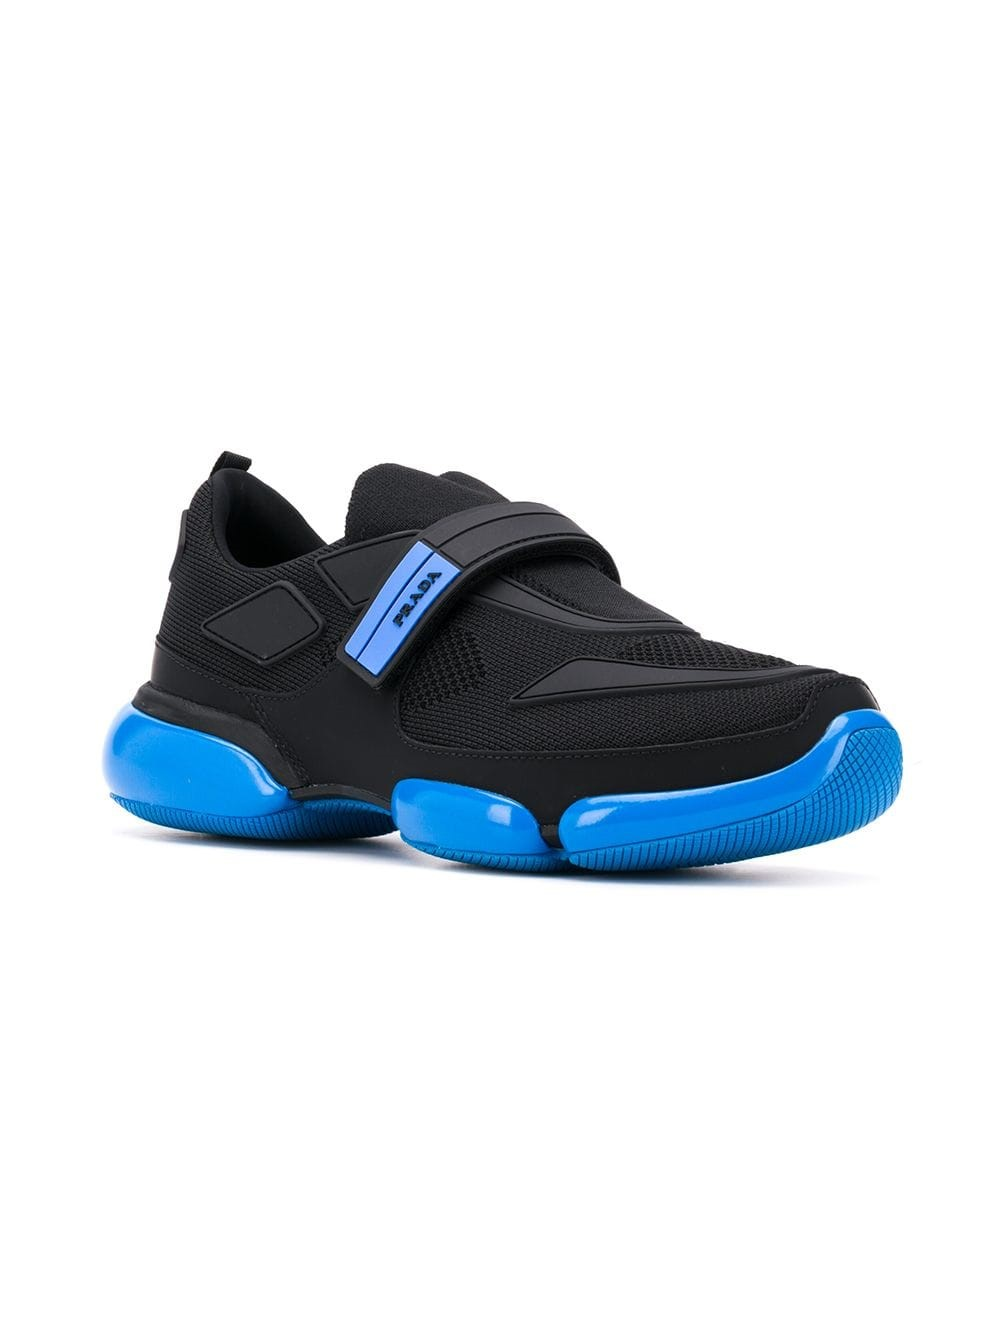 prada CLOUDBUST SNEAKERS available on